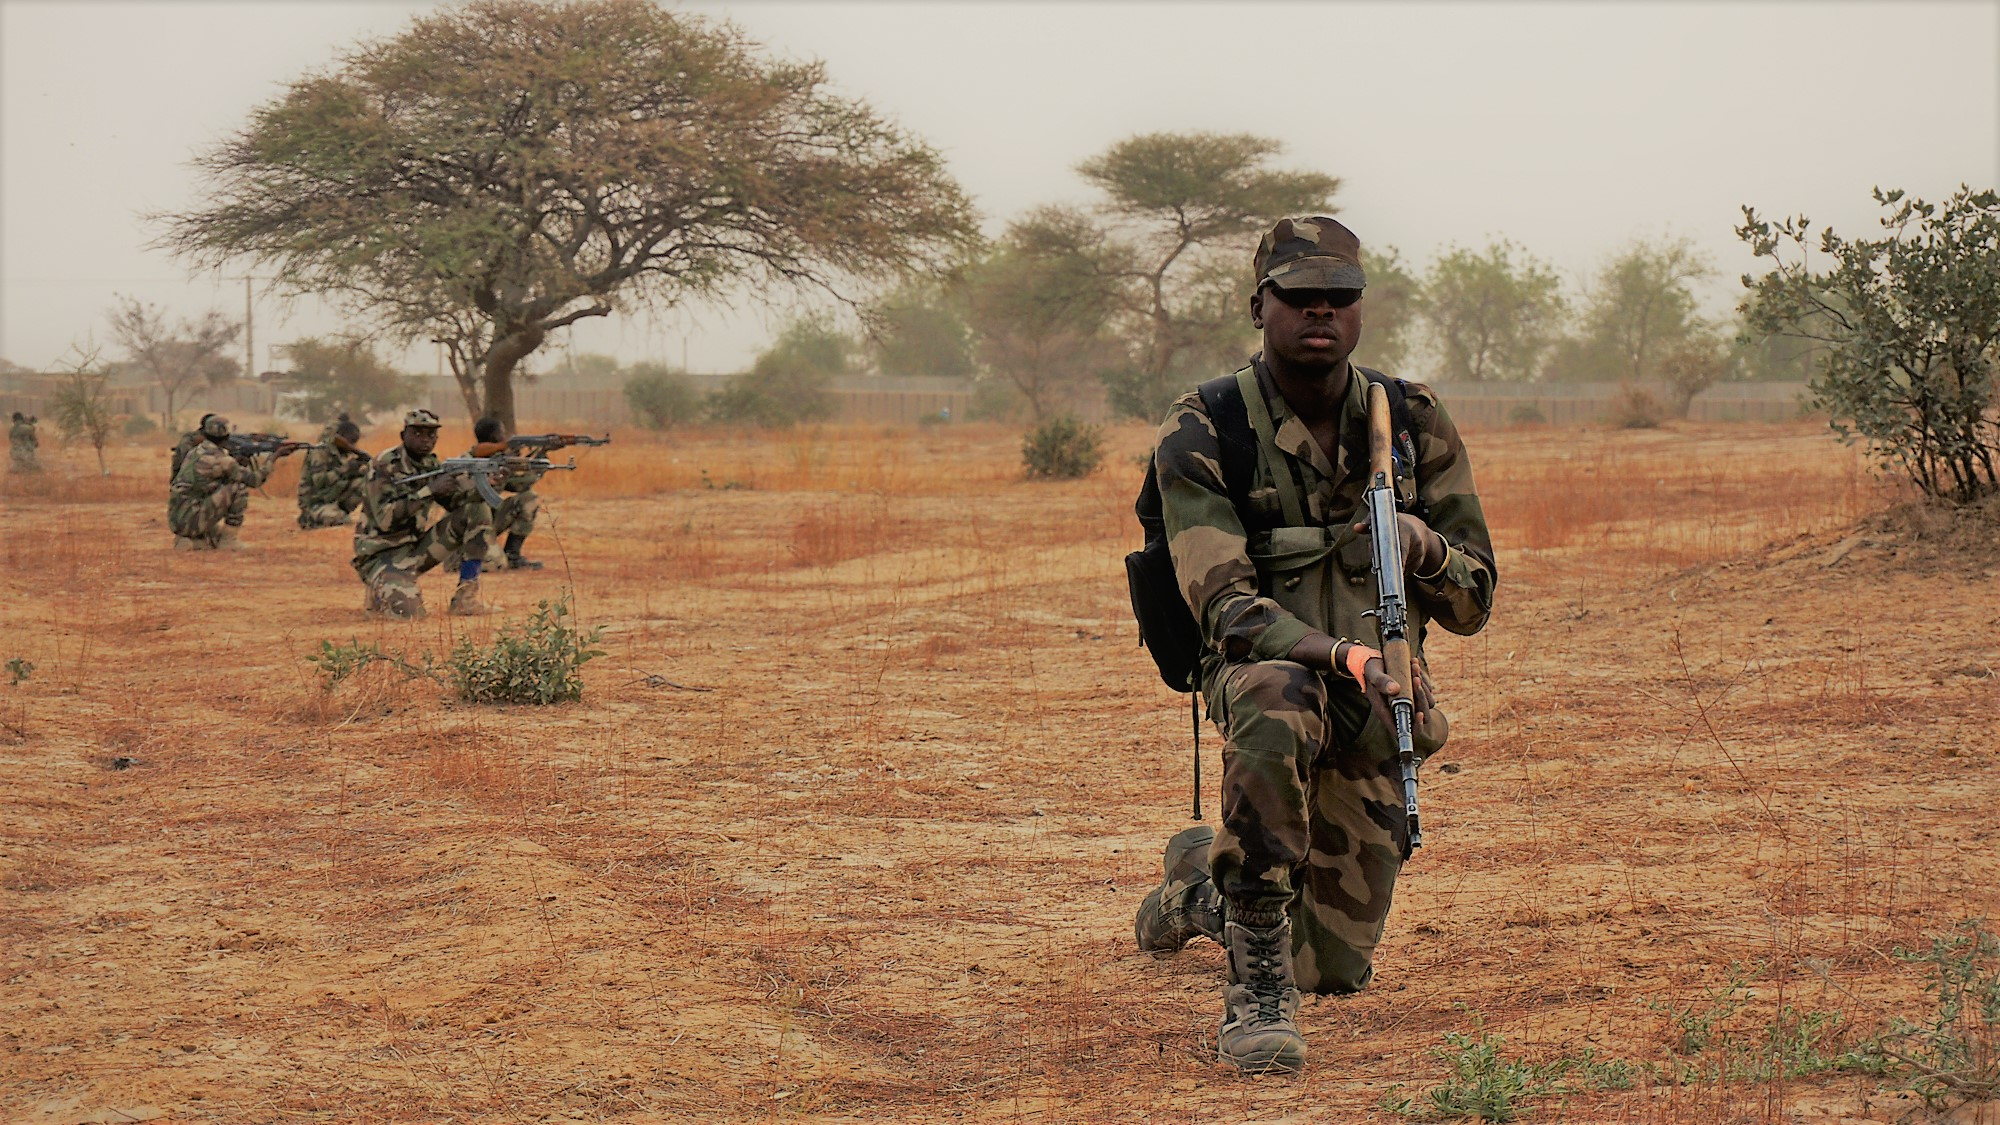 A Nigerien soldier provides rear security for his squad while they performed a dismounted patrol during Exercise Flintlock 2017 in Diffa, Niger, March 11, 2017. Flintlock exercises strengthen security institutions, promote multilateral sharing of information, and develop interoperability among partner nations in the Trans-Sahara. (U.S. Army photo by Spc. Zayid Ballesteros)